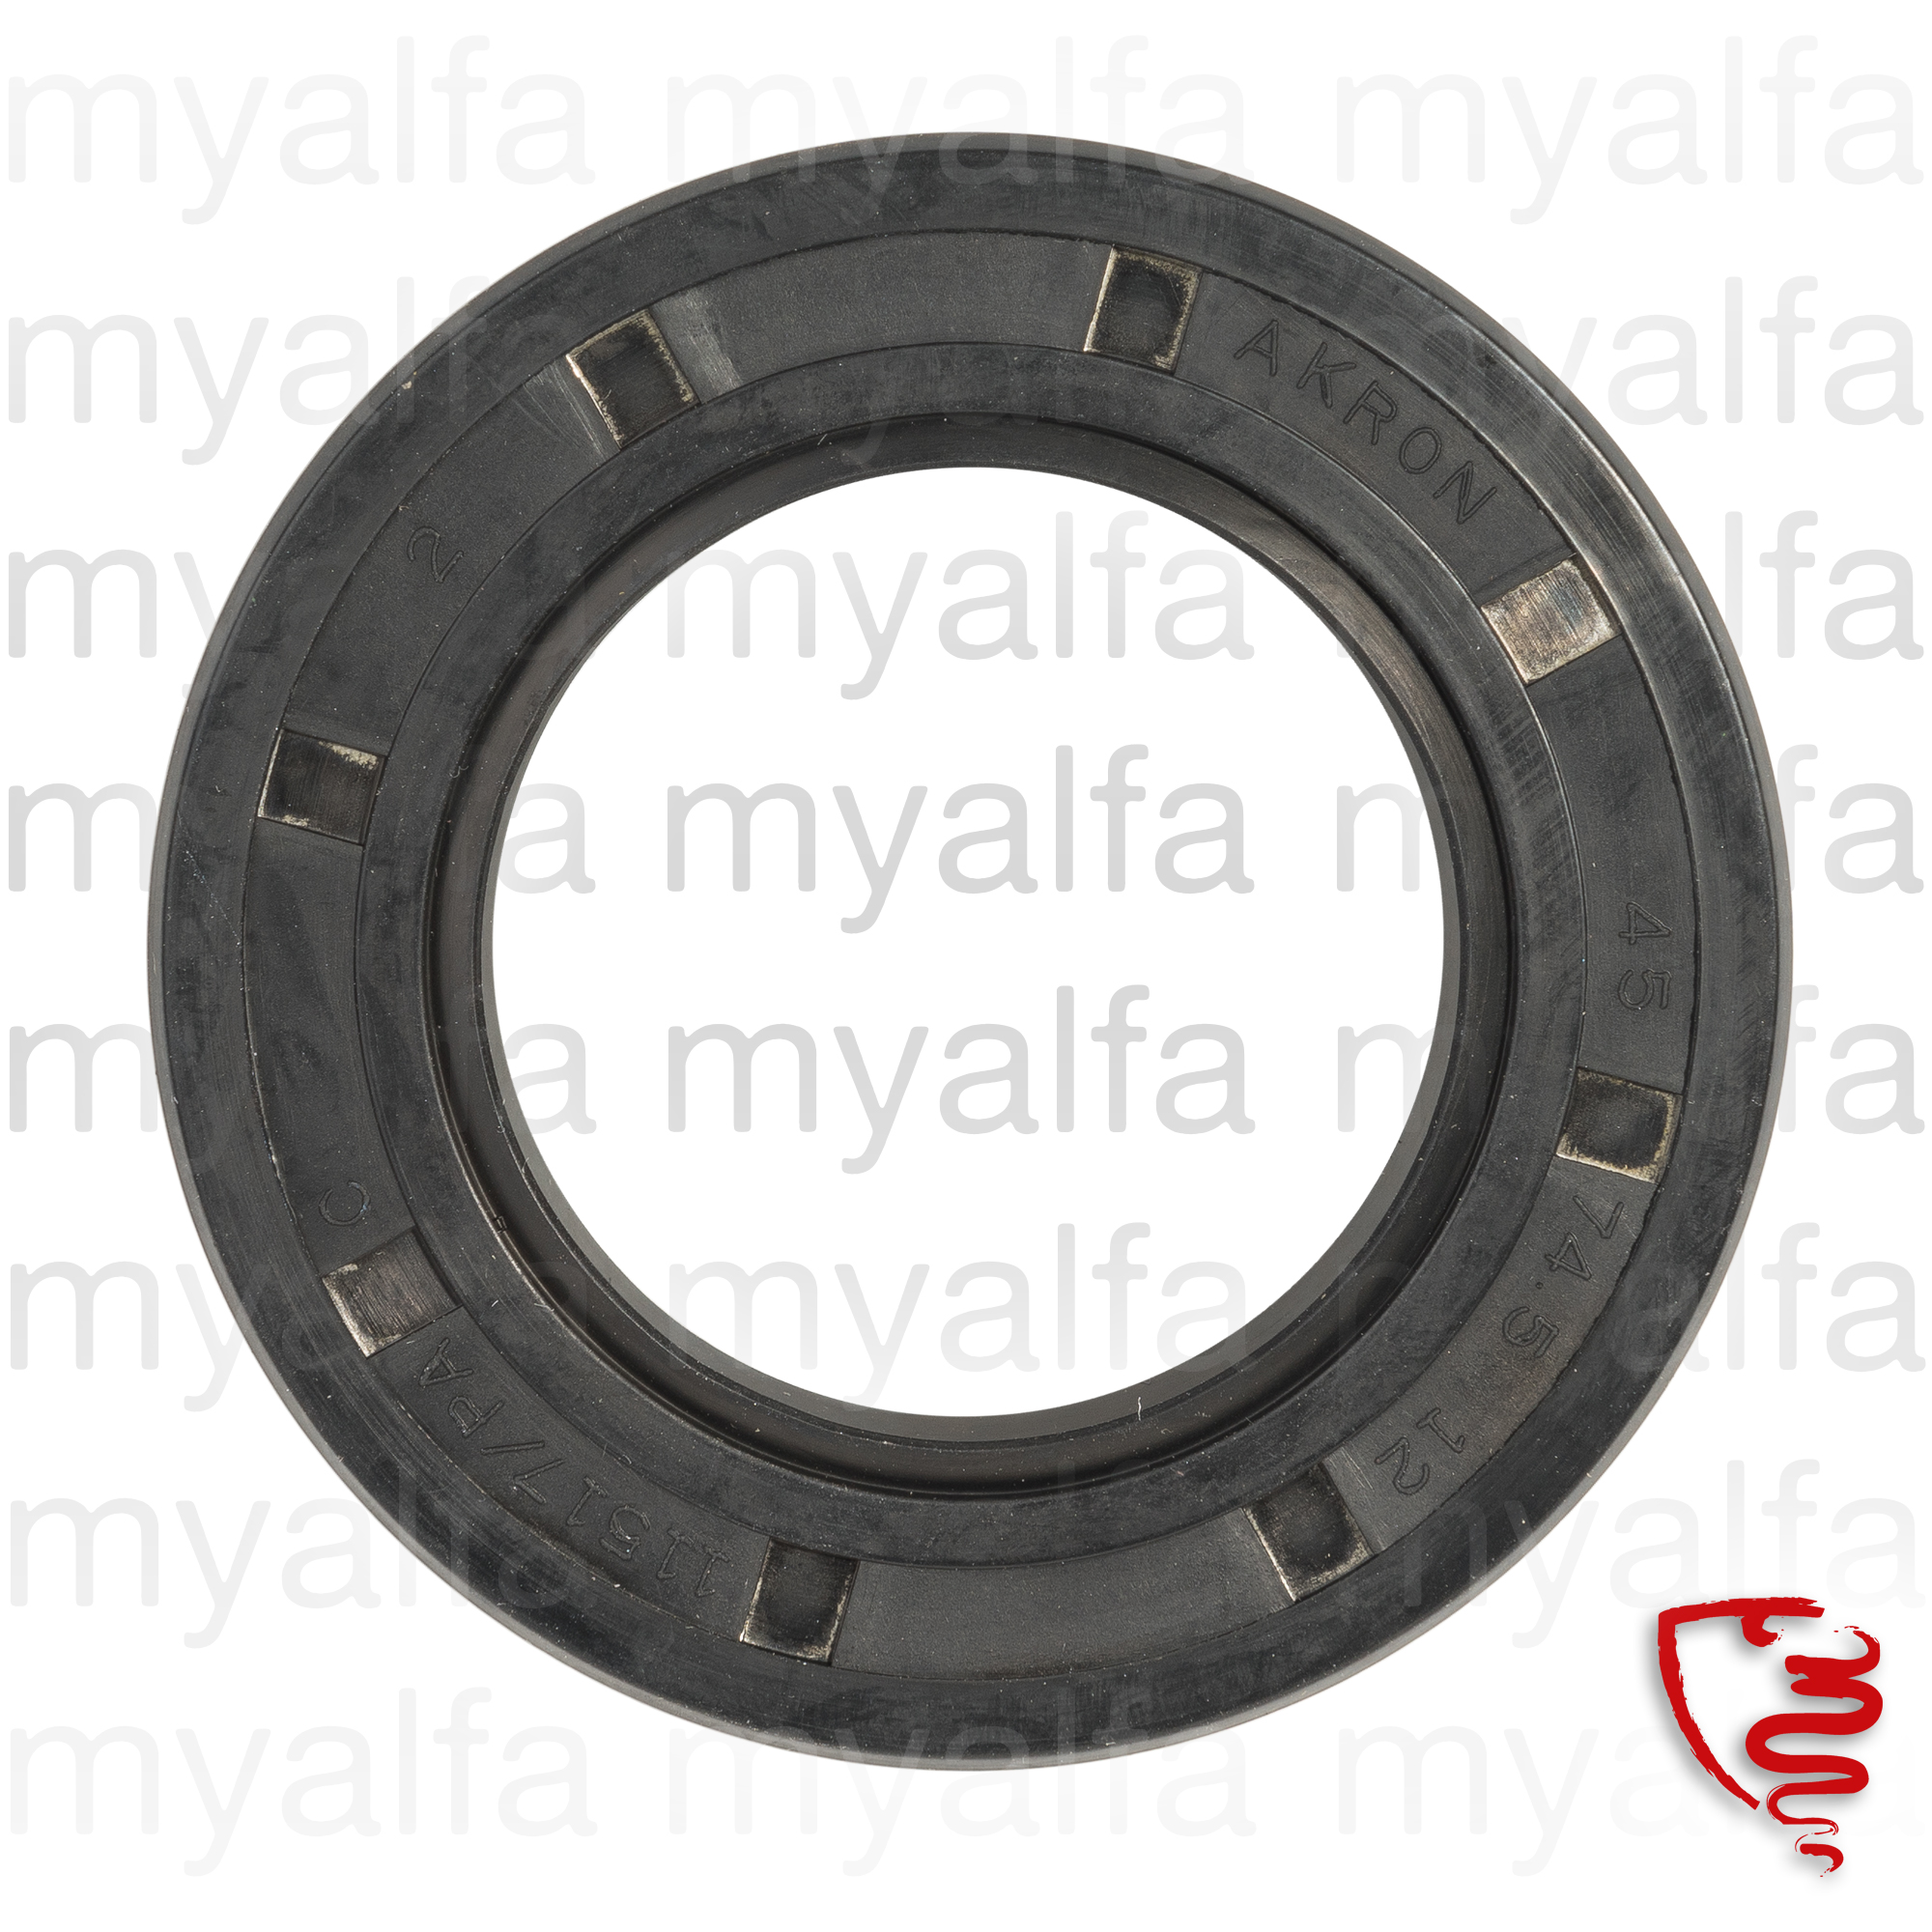 Differential seal 2000 (45 / 74.5 / 12) for 105/115, Coupe, 2000, Differential, Mounting Parts